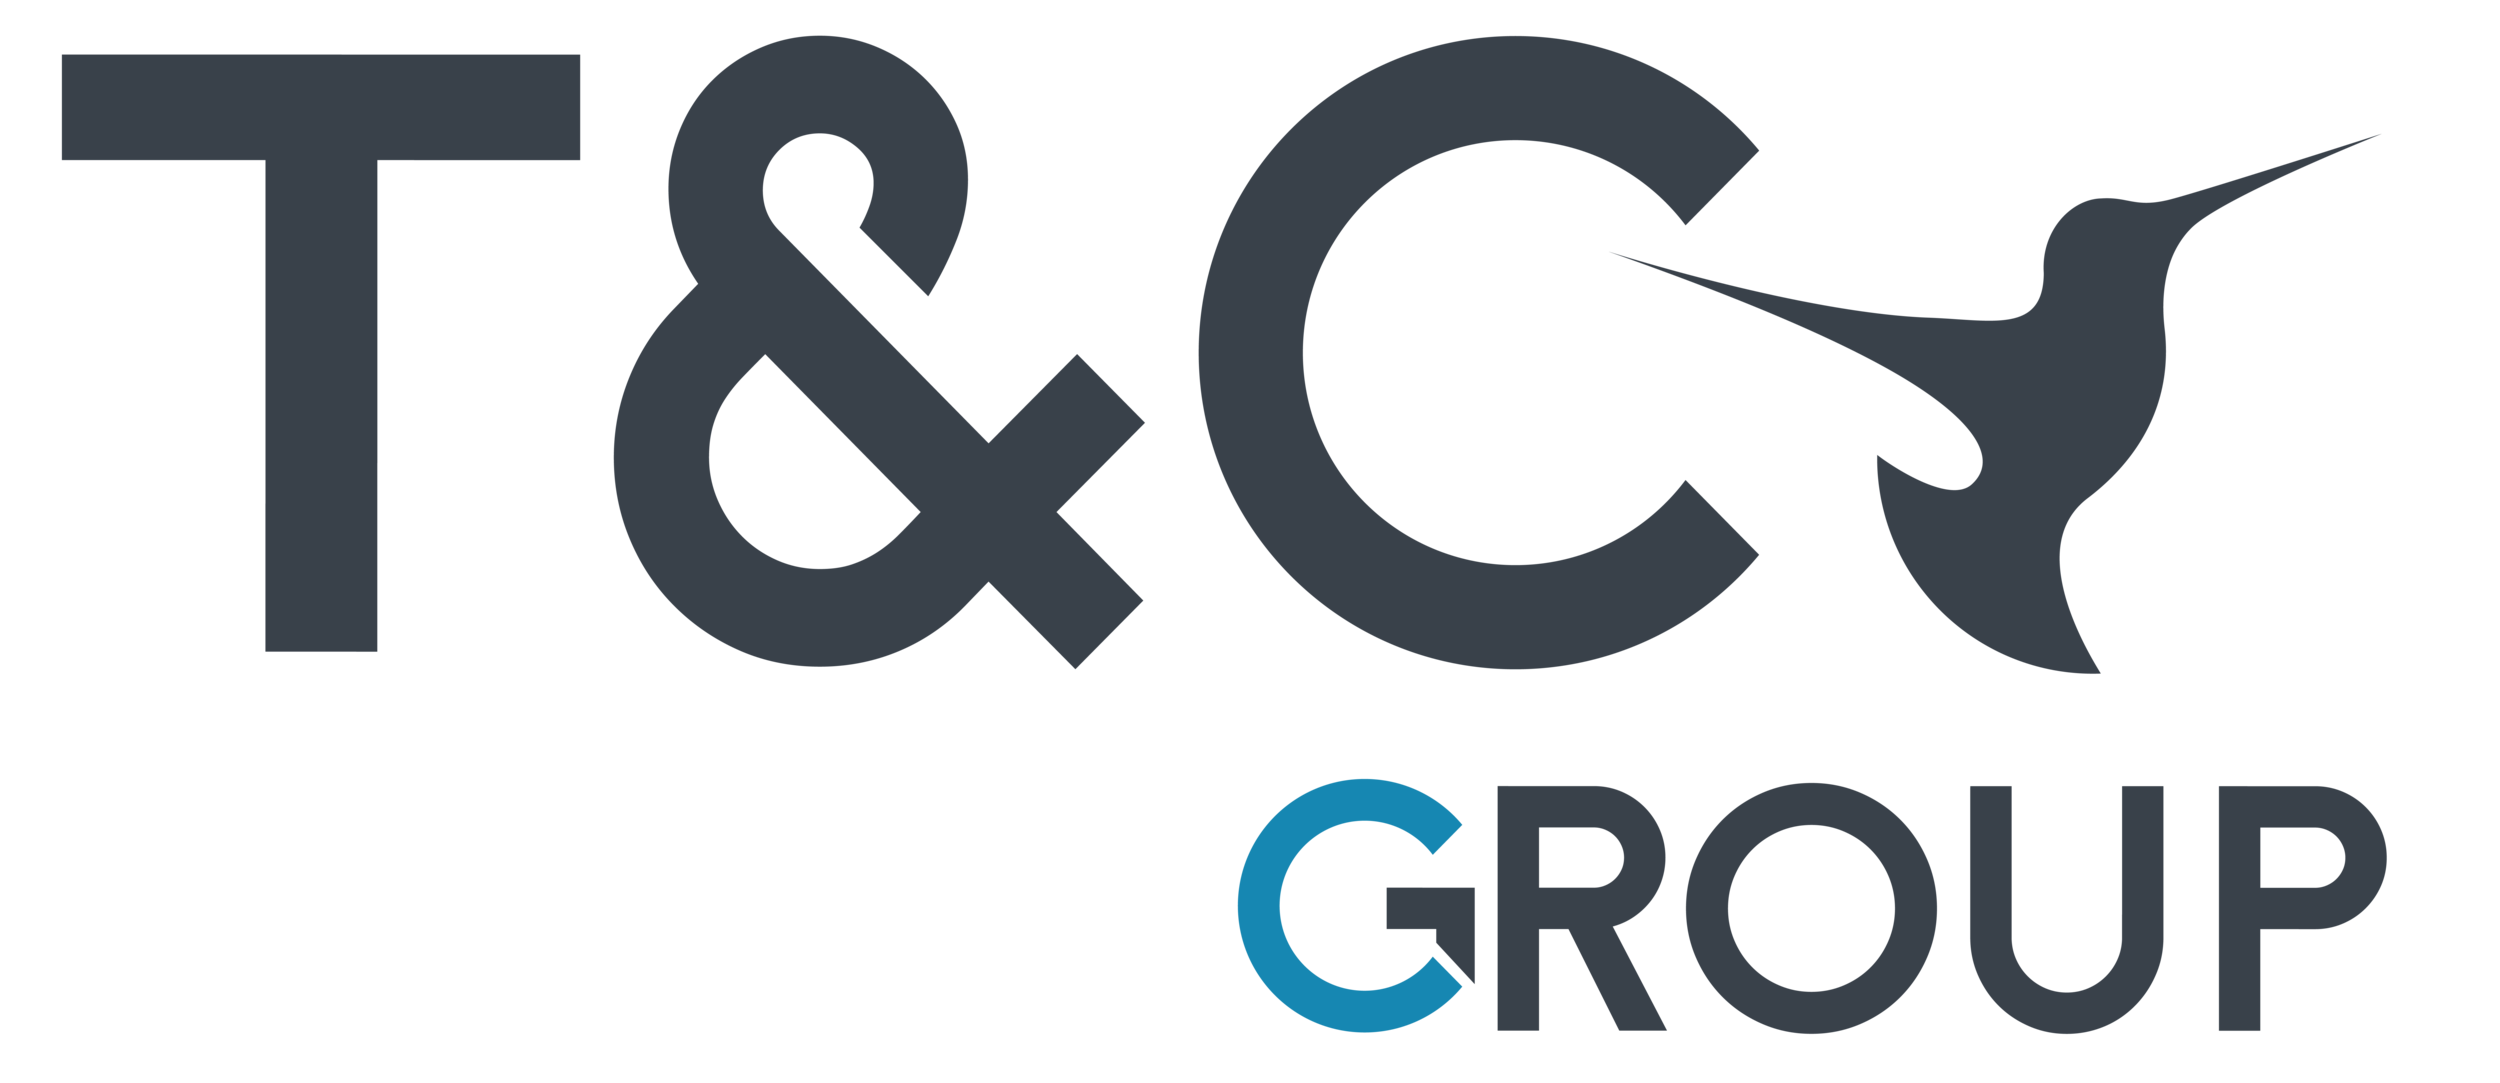 Logo T&C Group-06.png